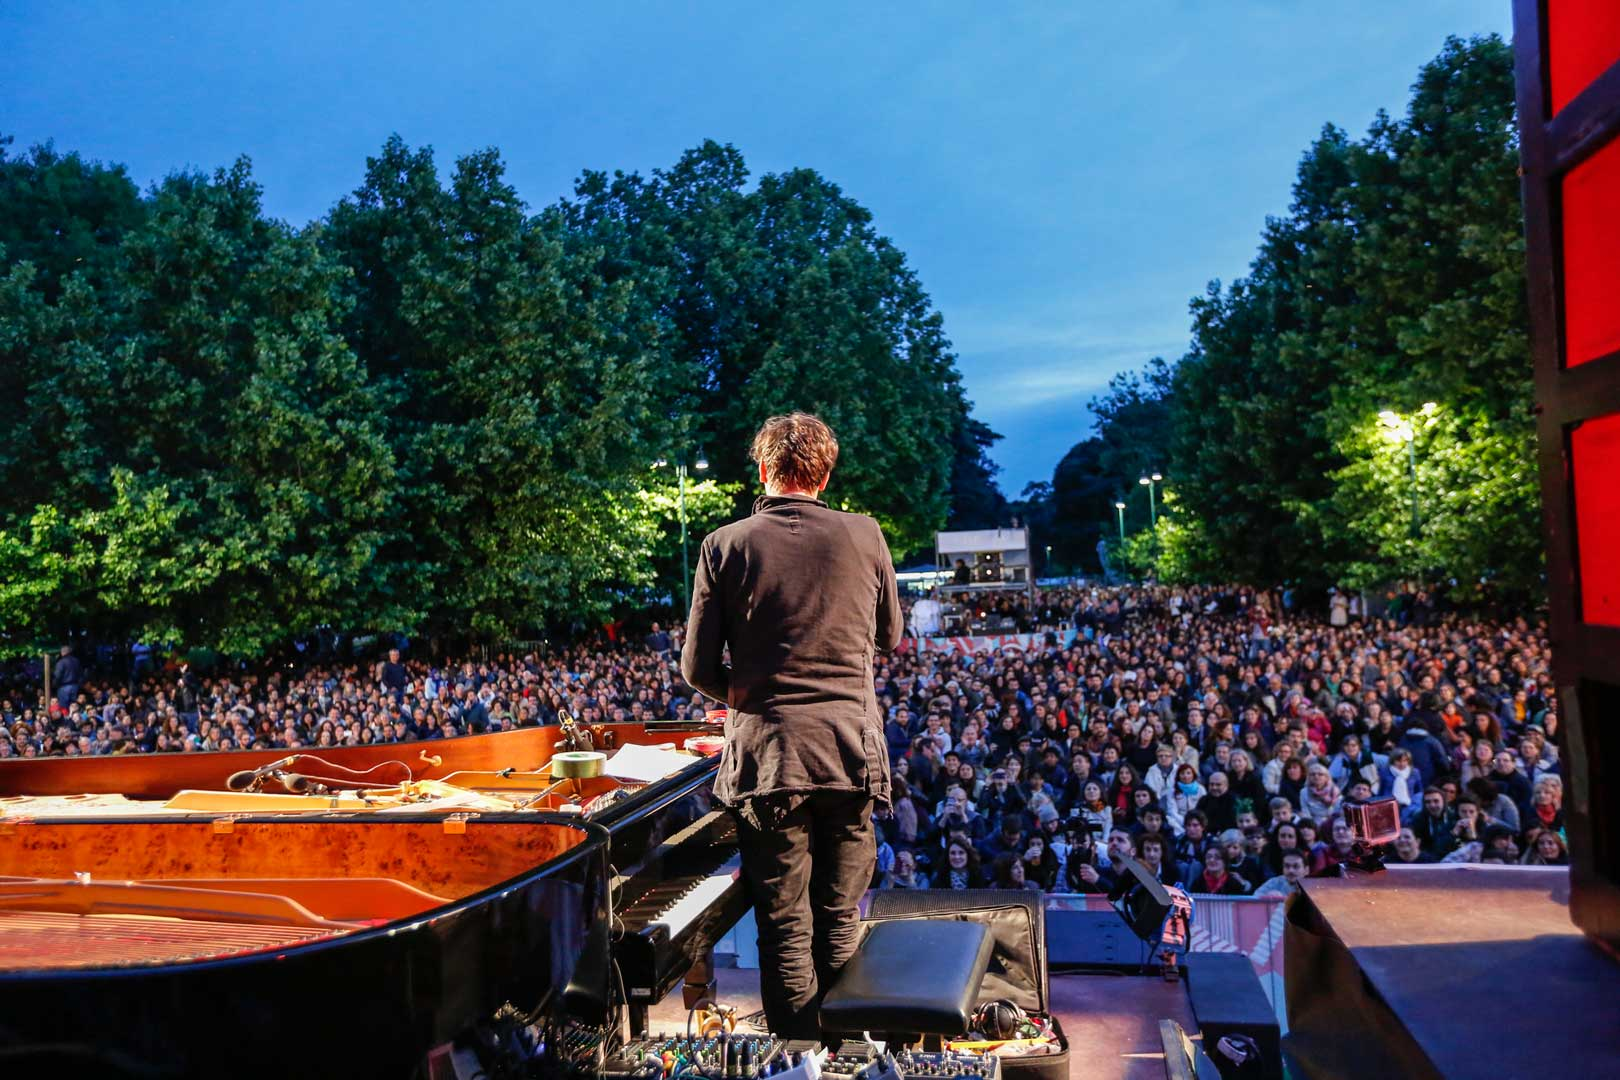 piano city milano arena civica PIANO CITY MILANO 2019